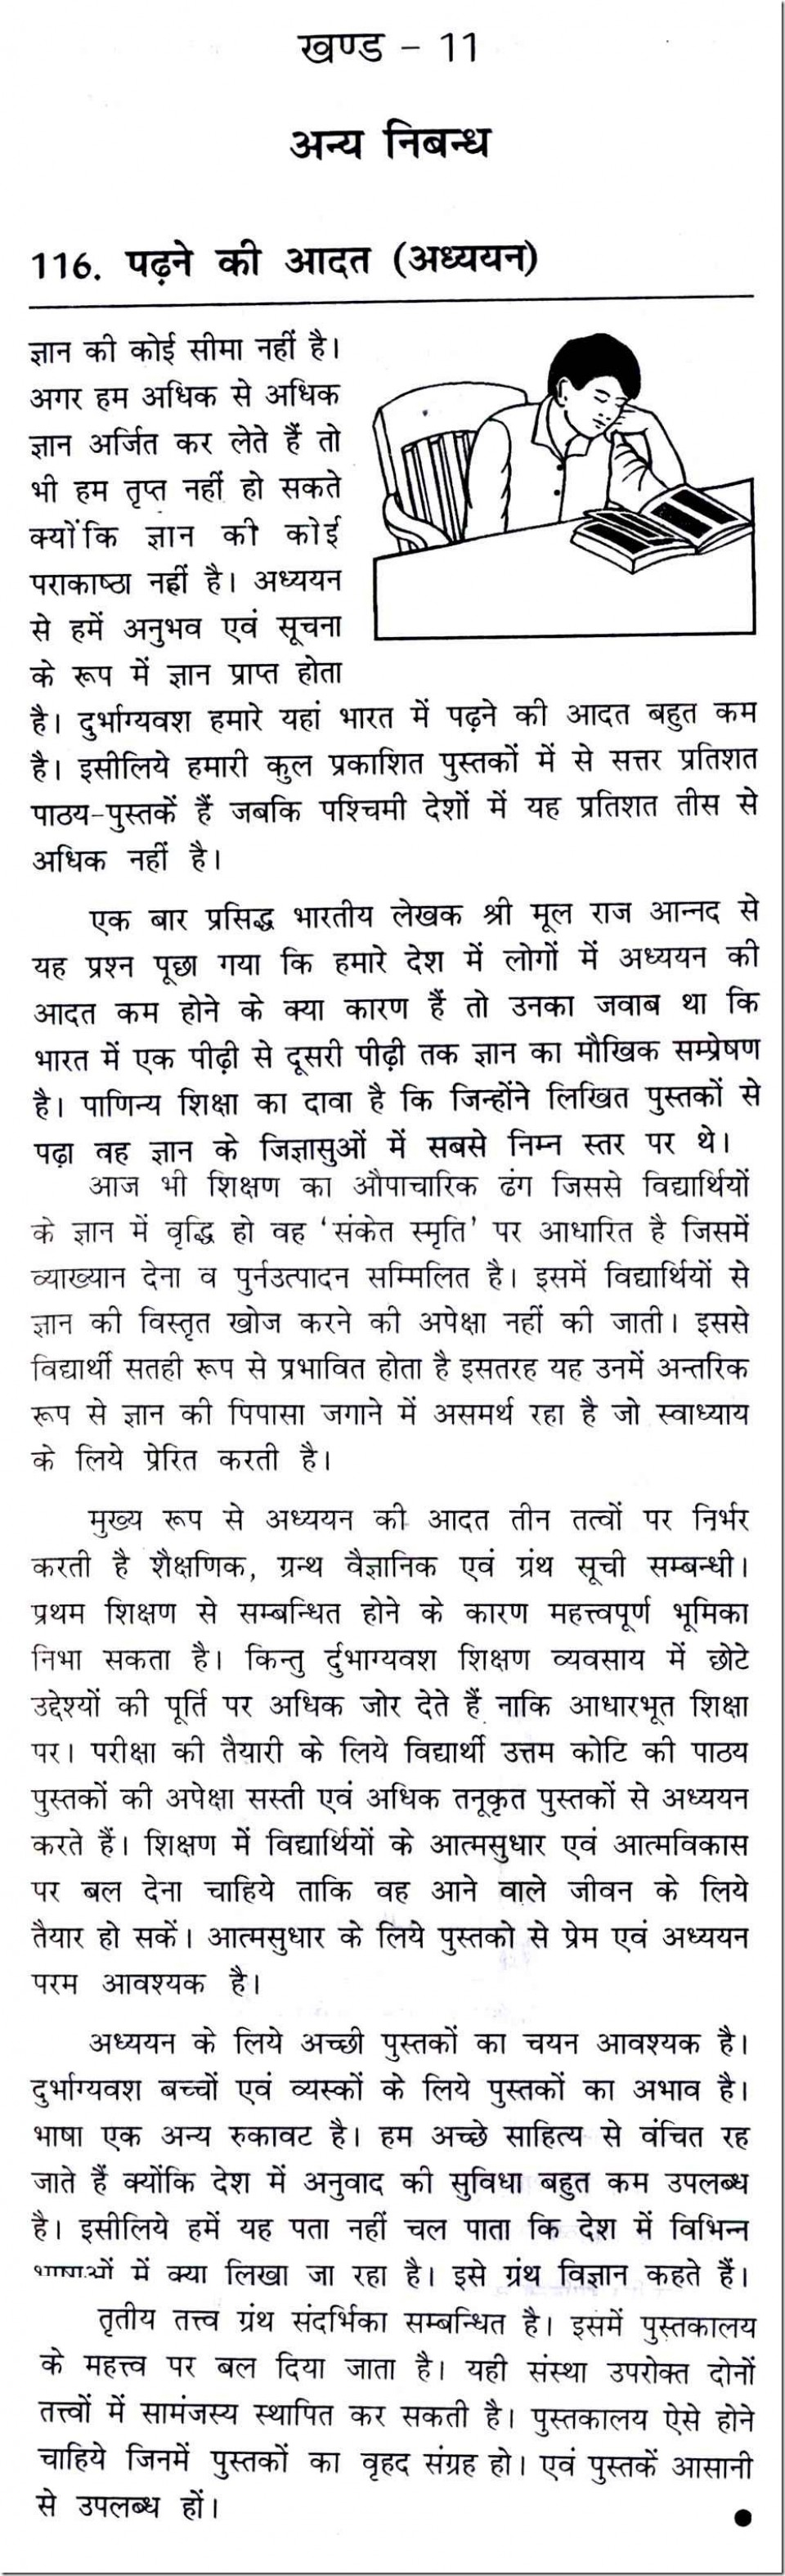 016 Good Habits Essay In Hindi 10118 Thumb Exceptional Reading Habit Wikipedia 960